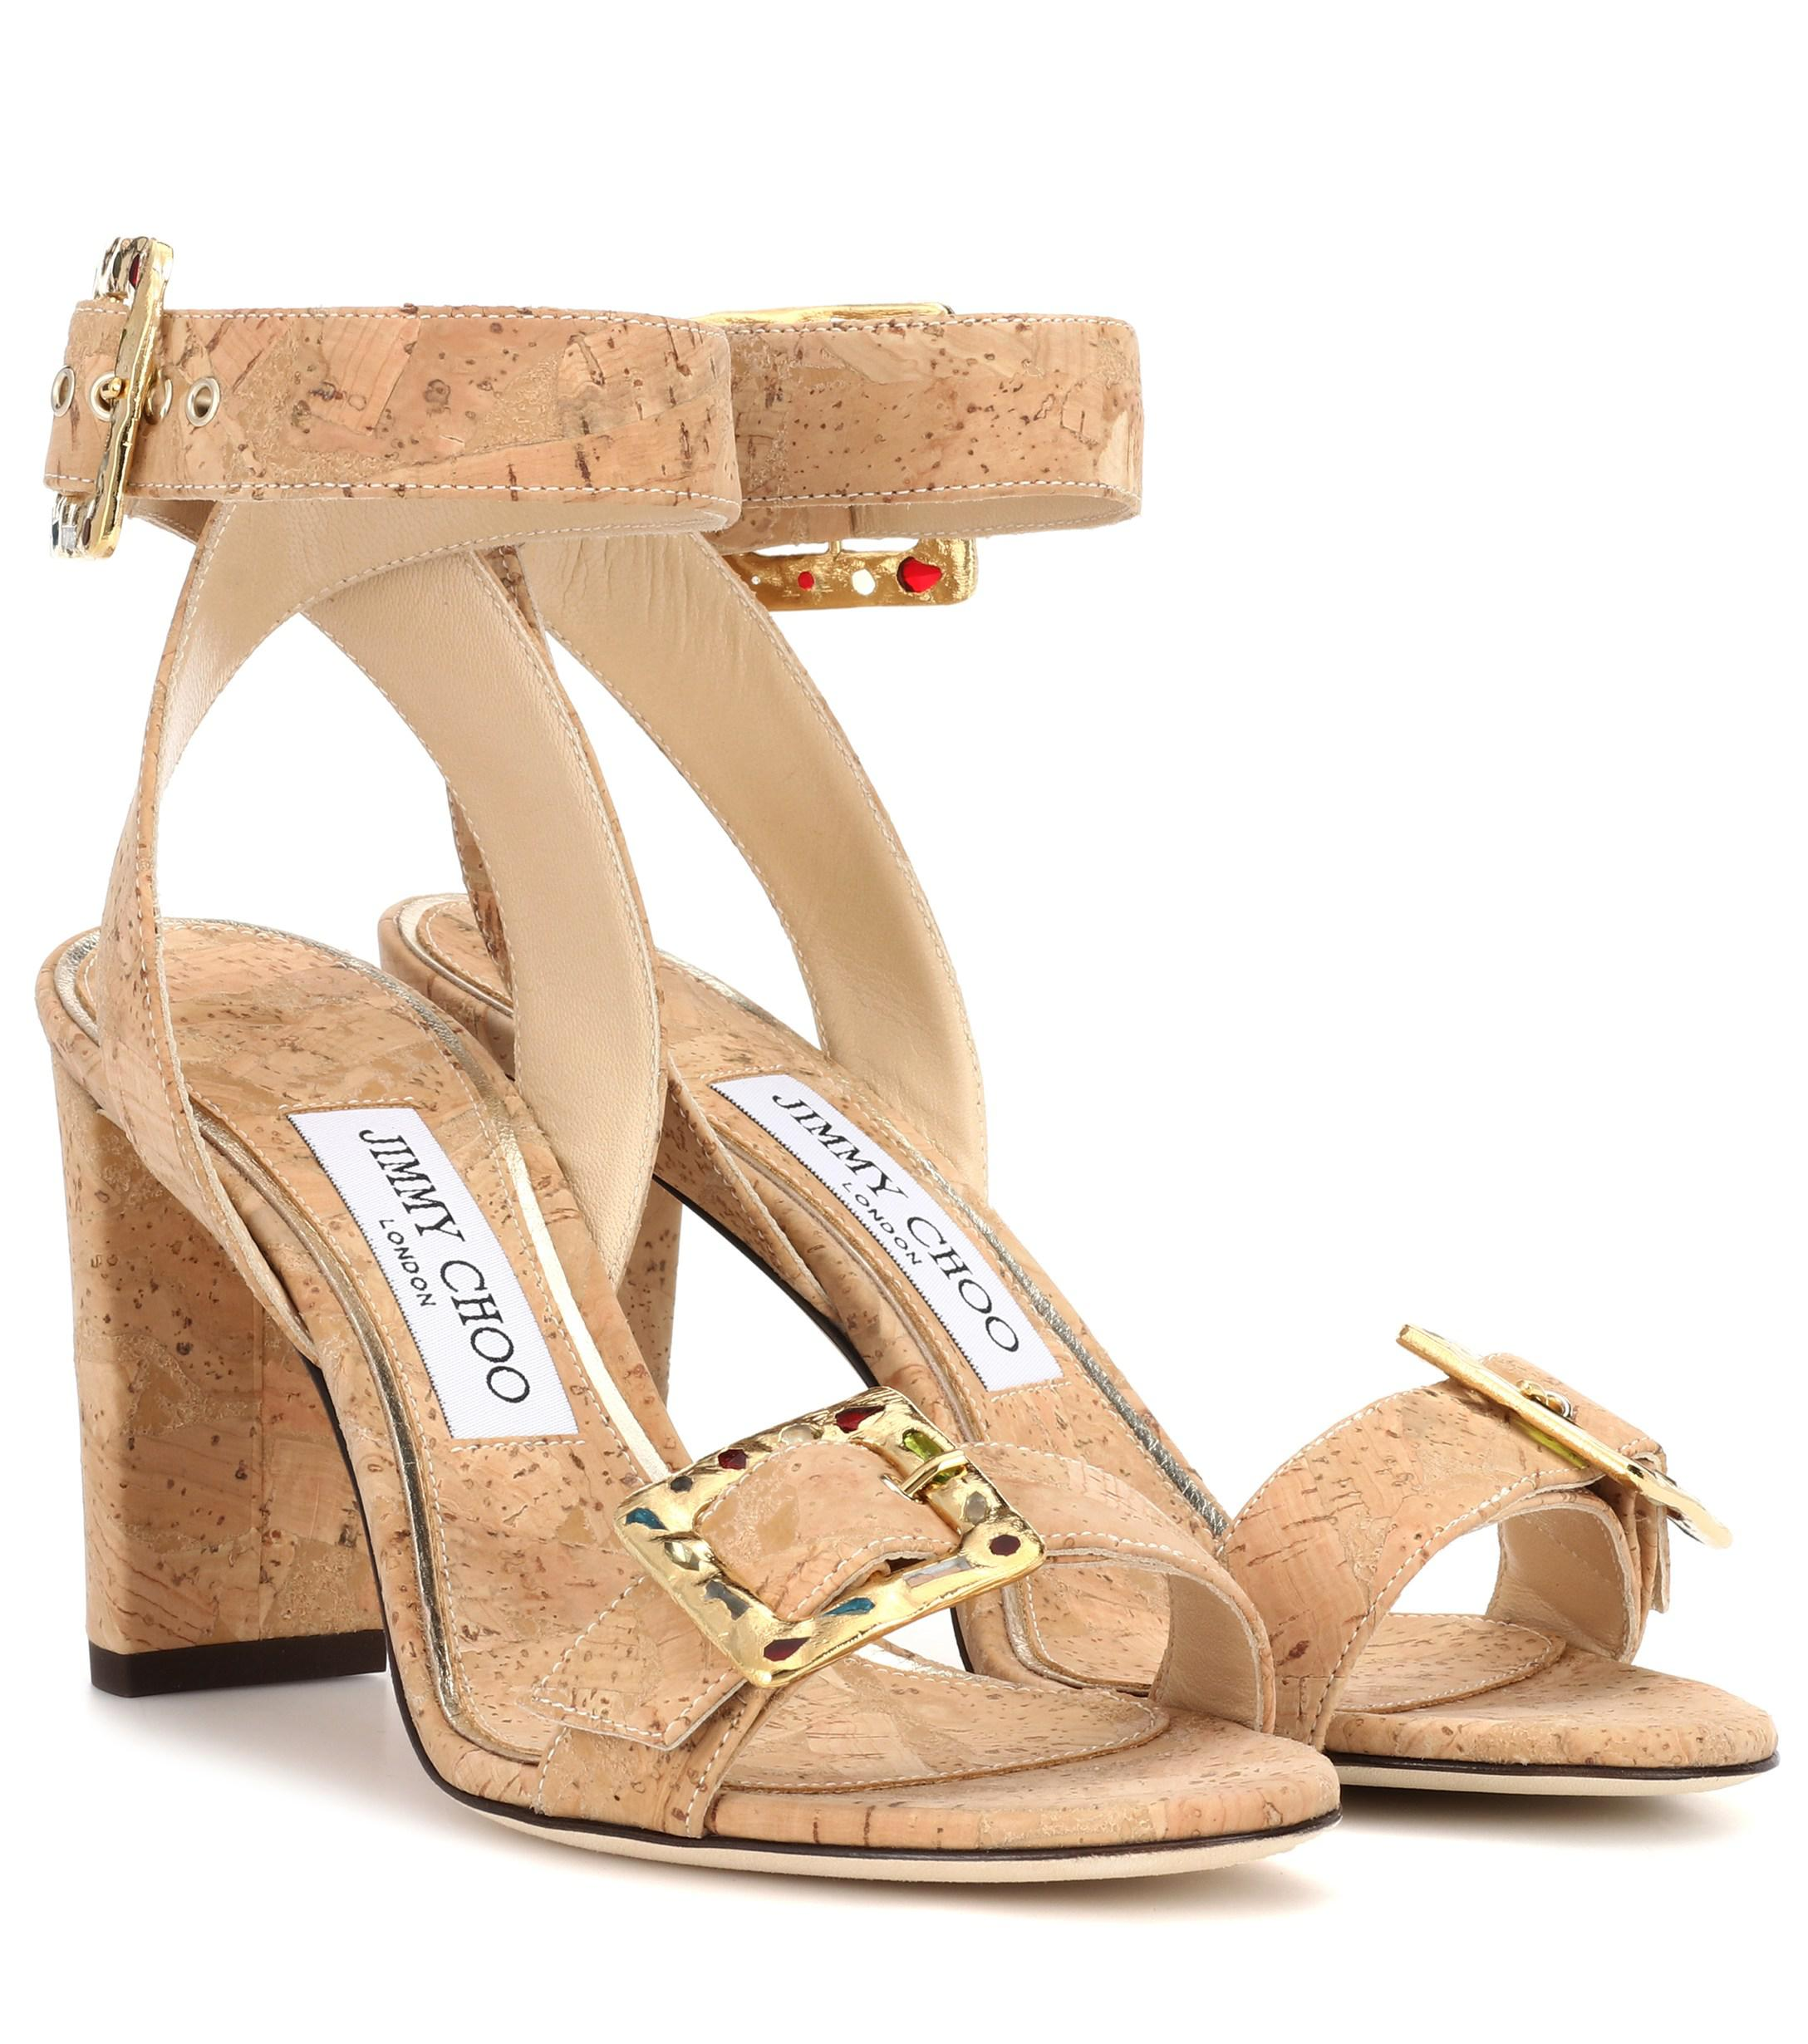 3878bbad6afc Jimmy Choo - Natural Dacha 85 Cork Sandals - Lyst. View fullscreen